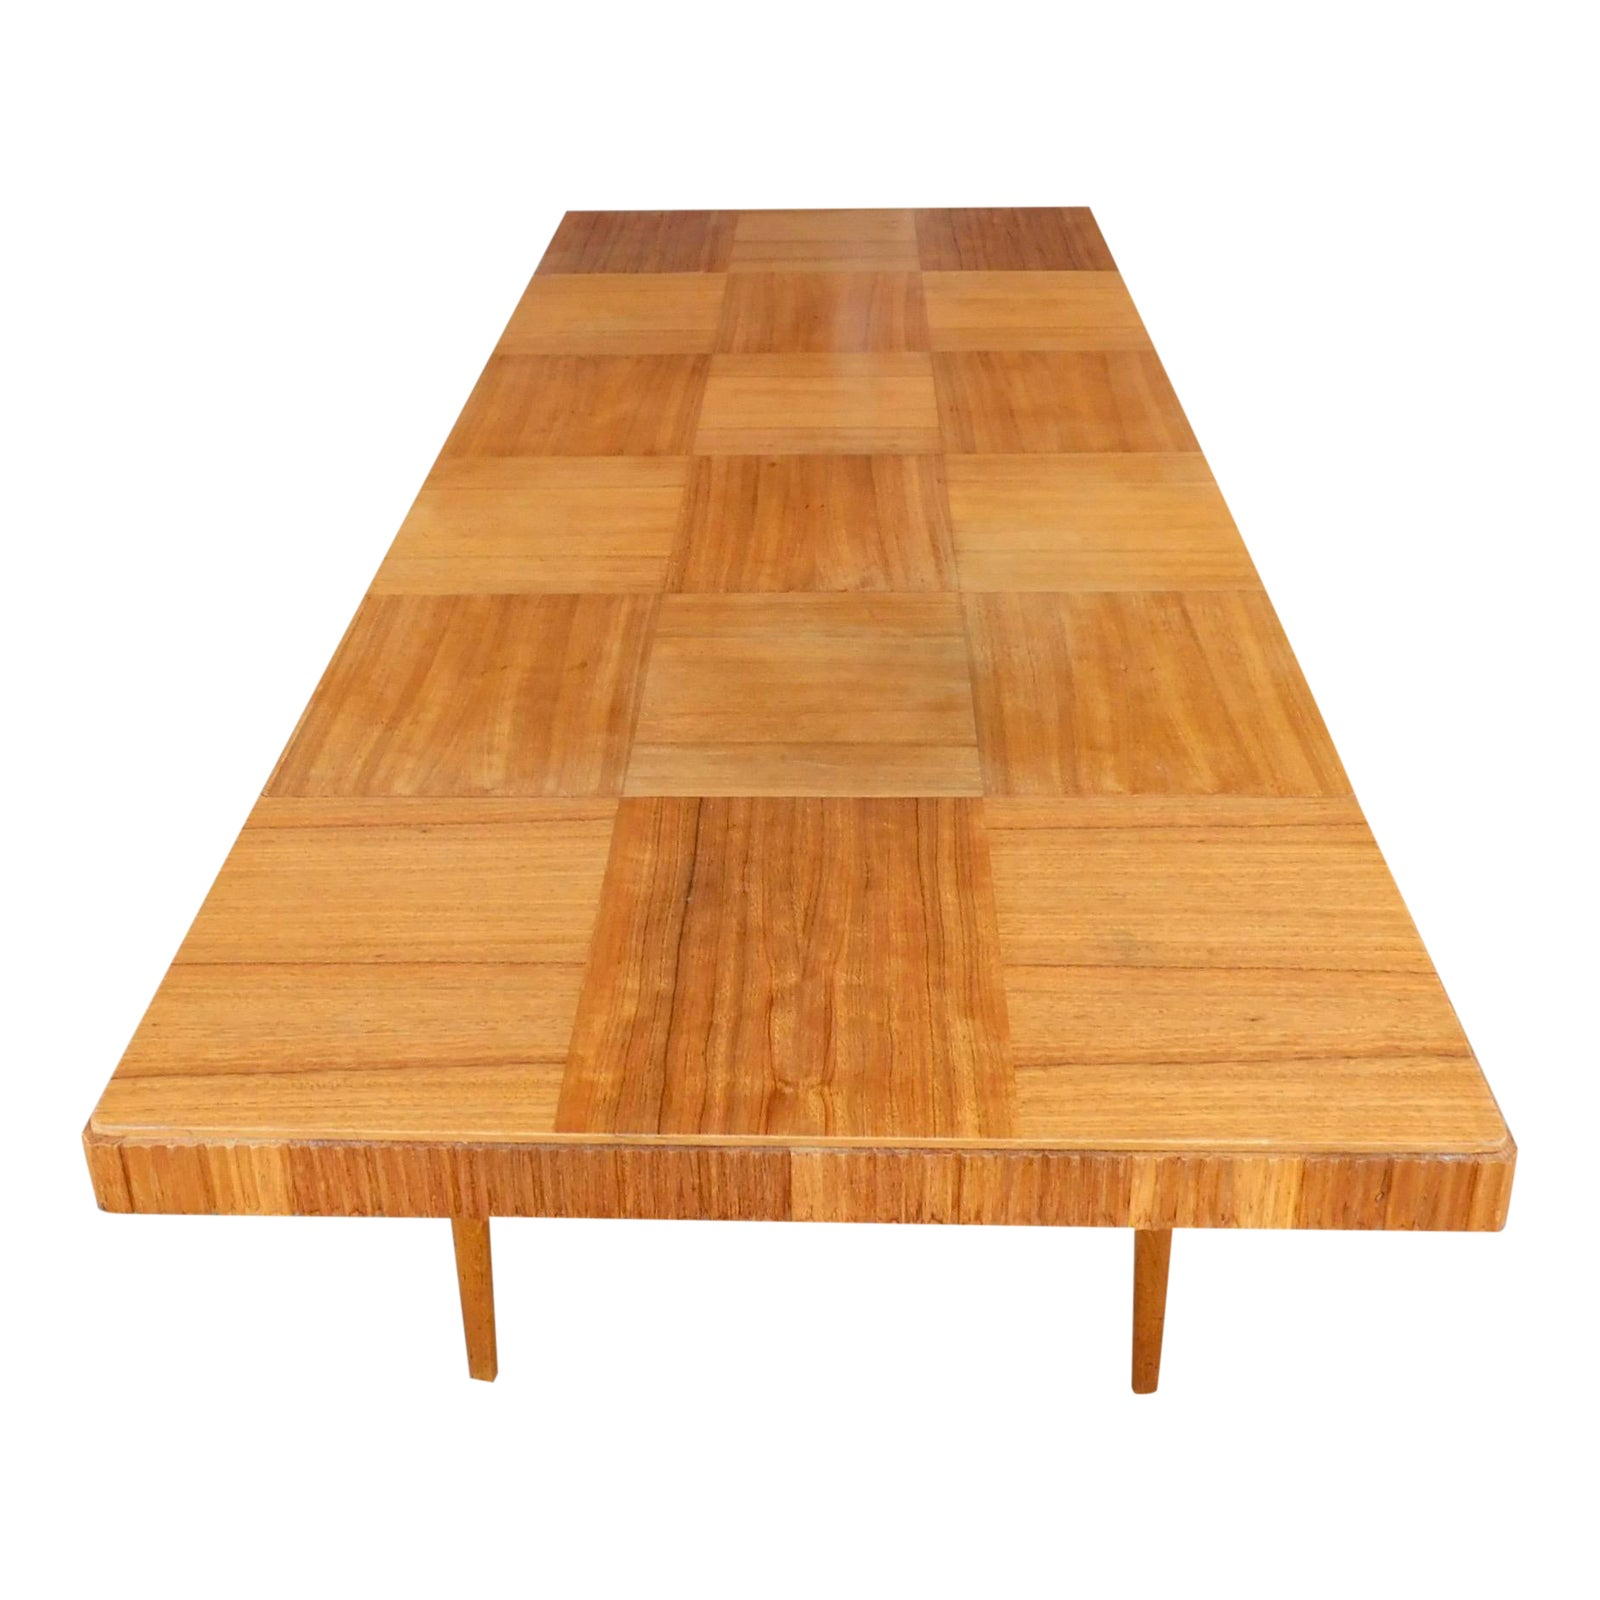 Swedish Mid Century Modern Extendable Dining Table Chairish